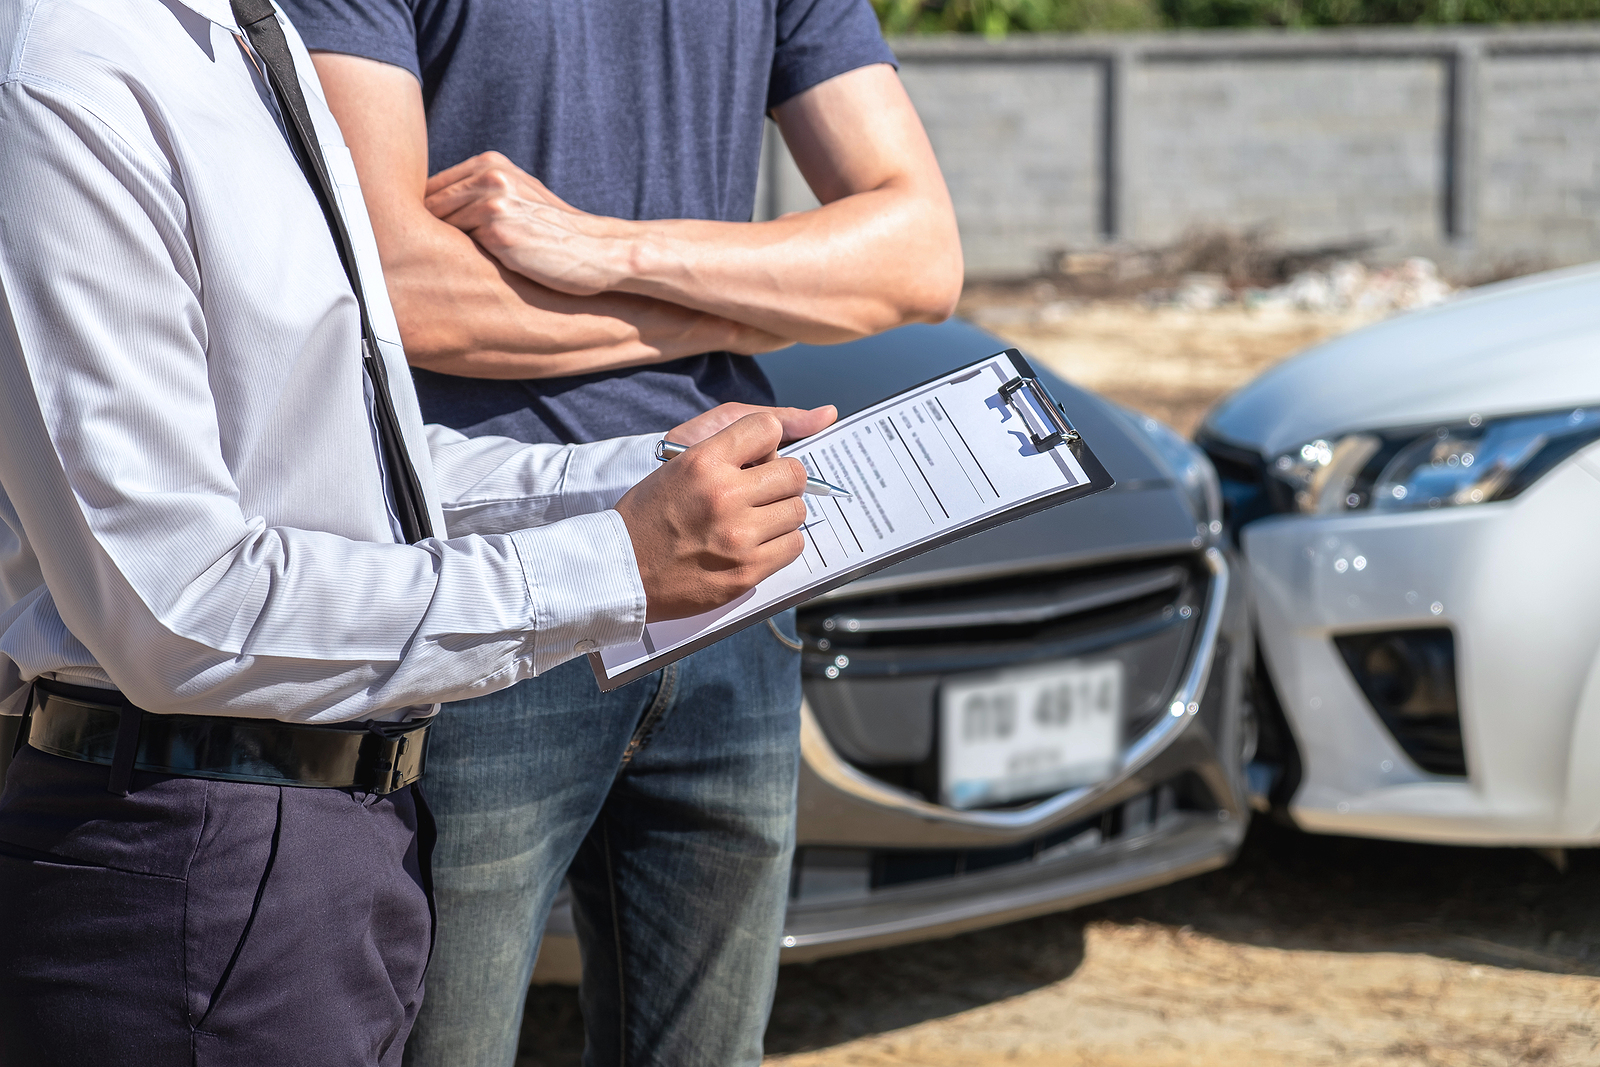 Do You File A Claim With Florida Workers Comp Or Auto Insurance If You Are In A Work-Related Car Crash?